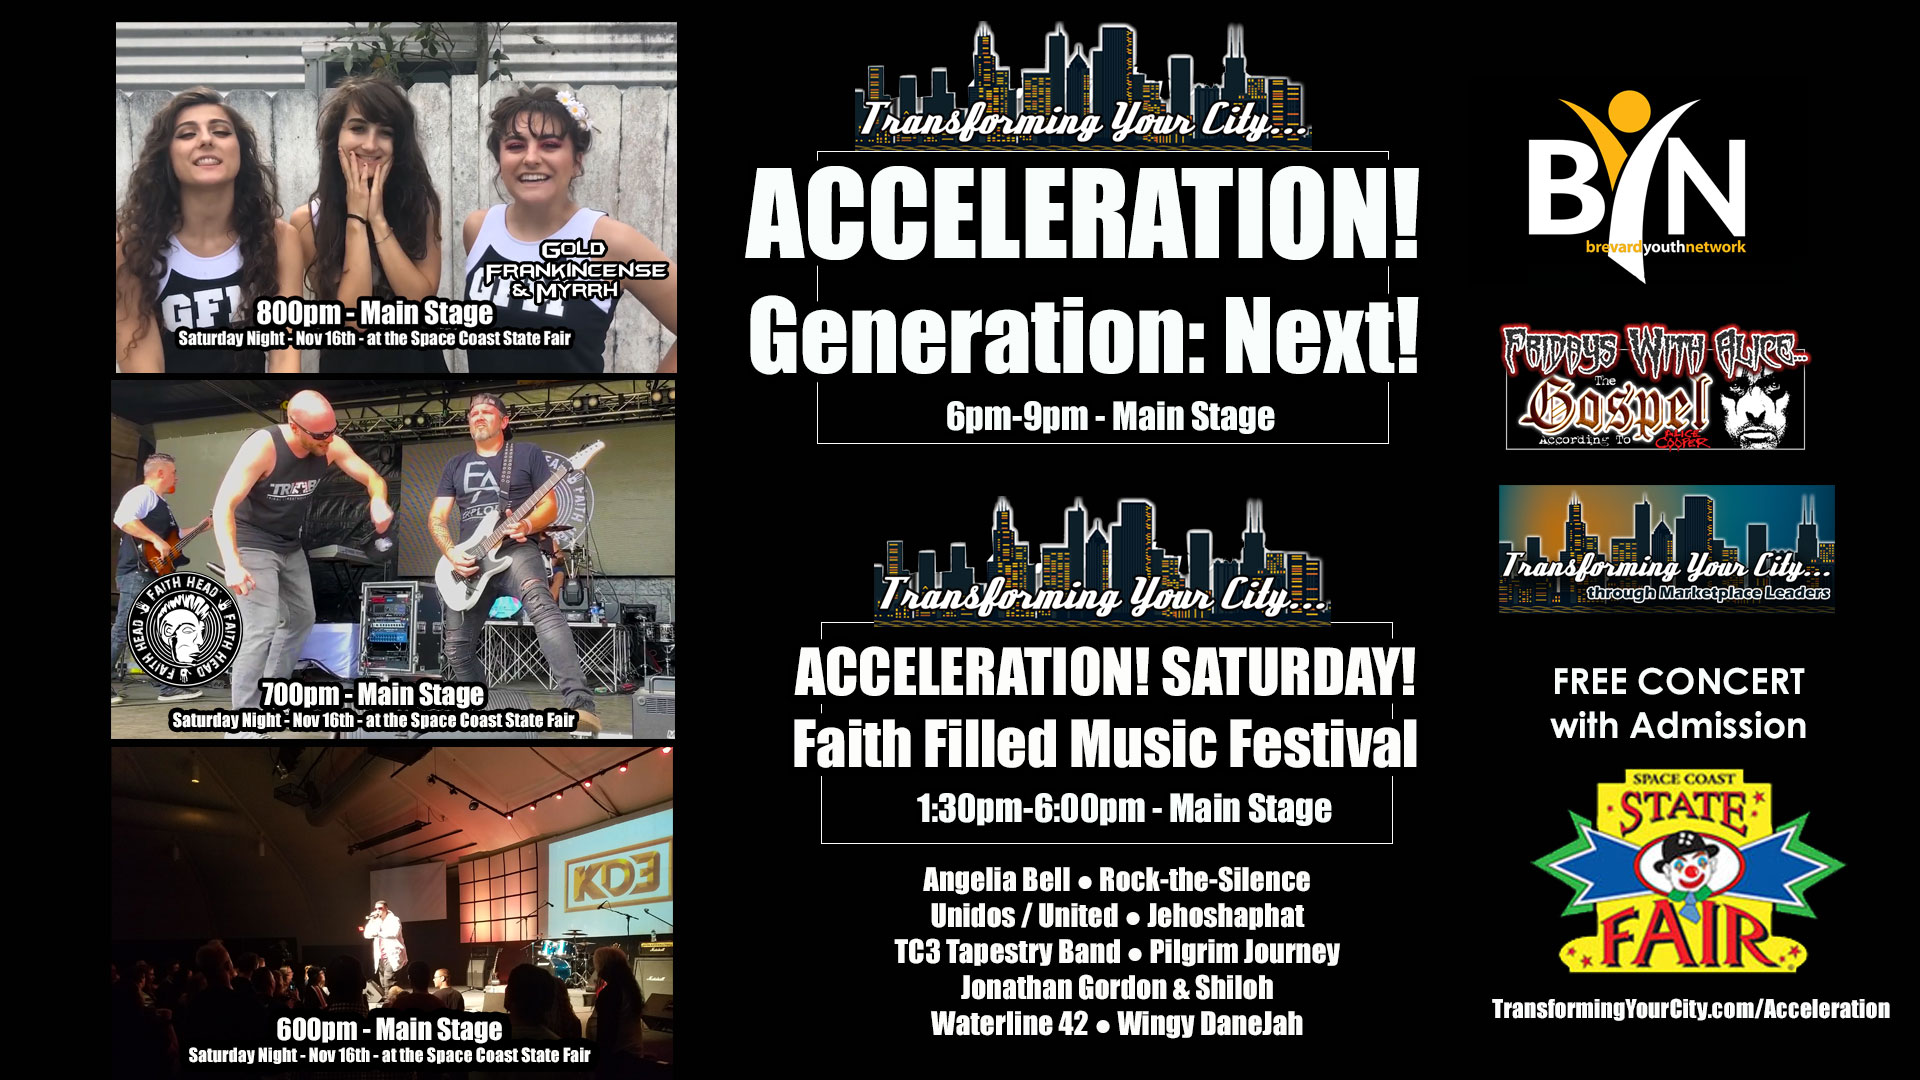 Acceleration! Saturday! Faith Filled Music Festival